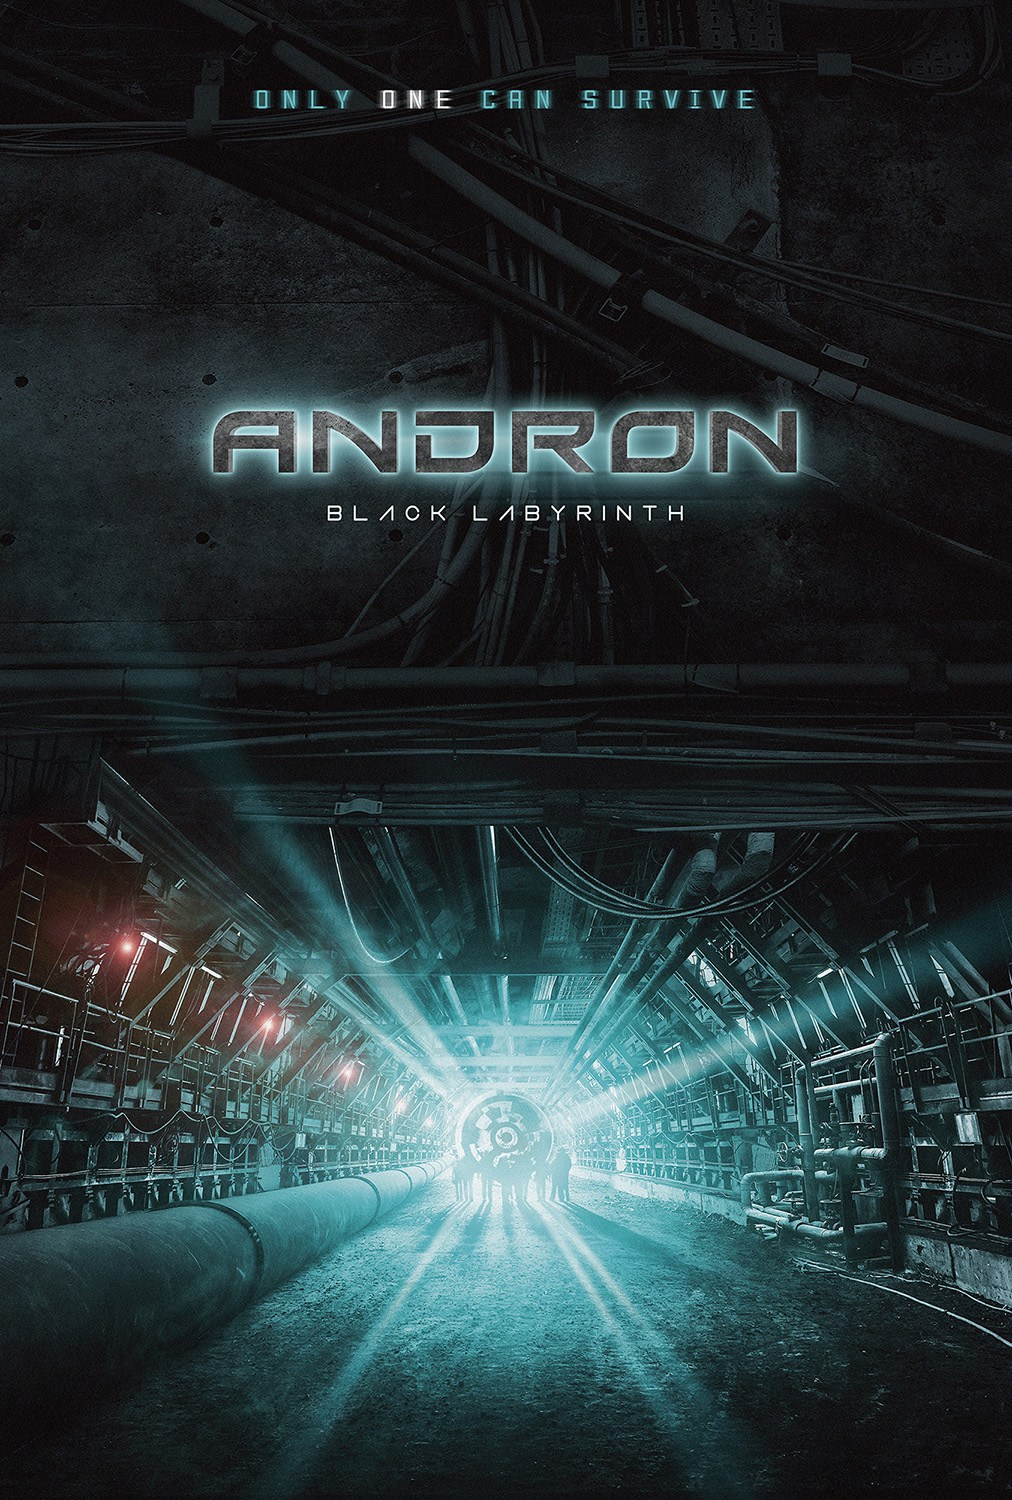 andron poster 1